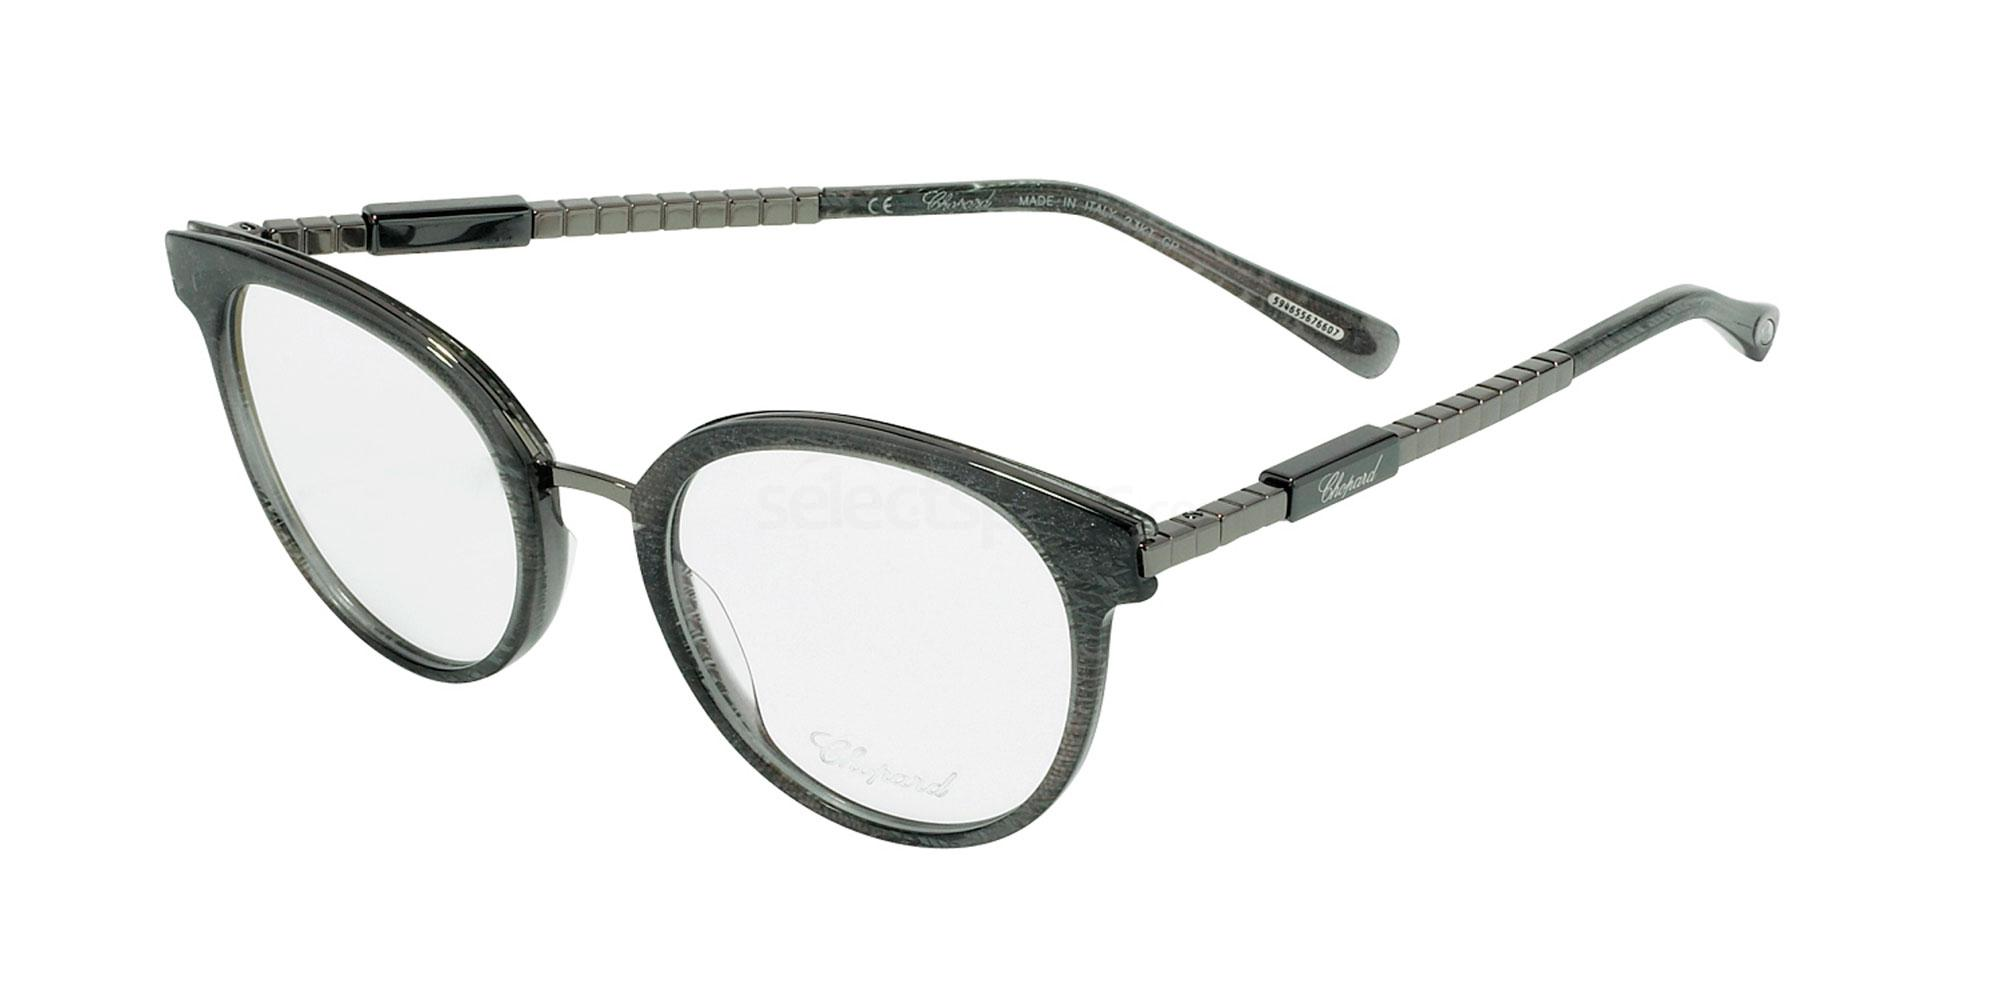 09E5 VCH239 Glasses, Chopard